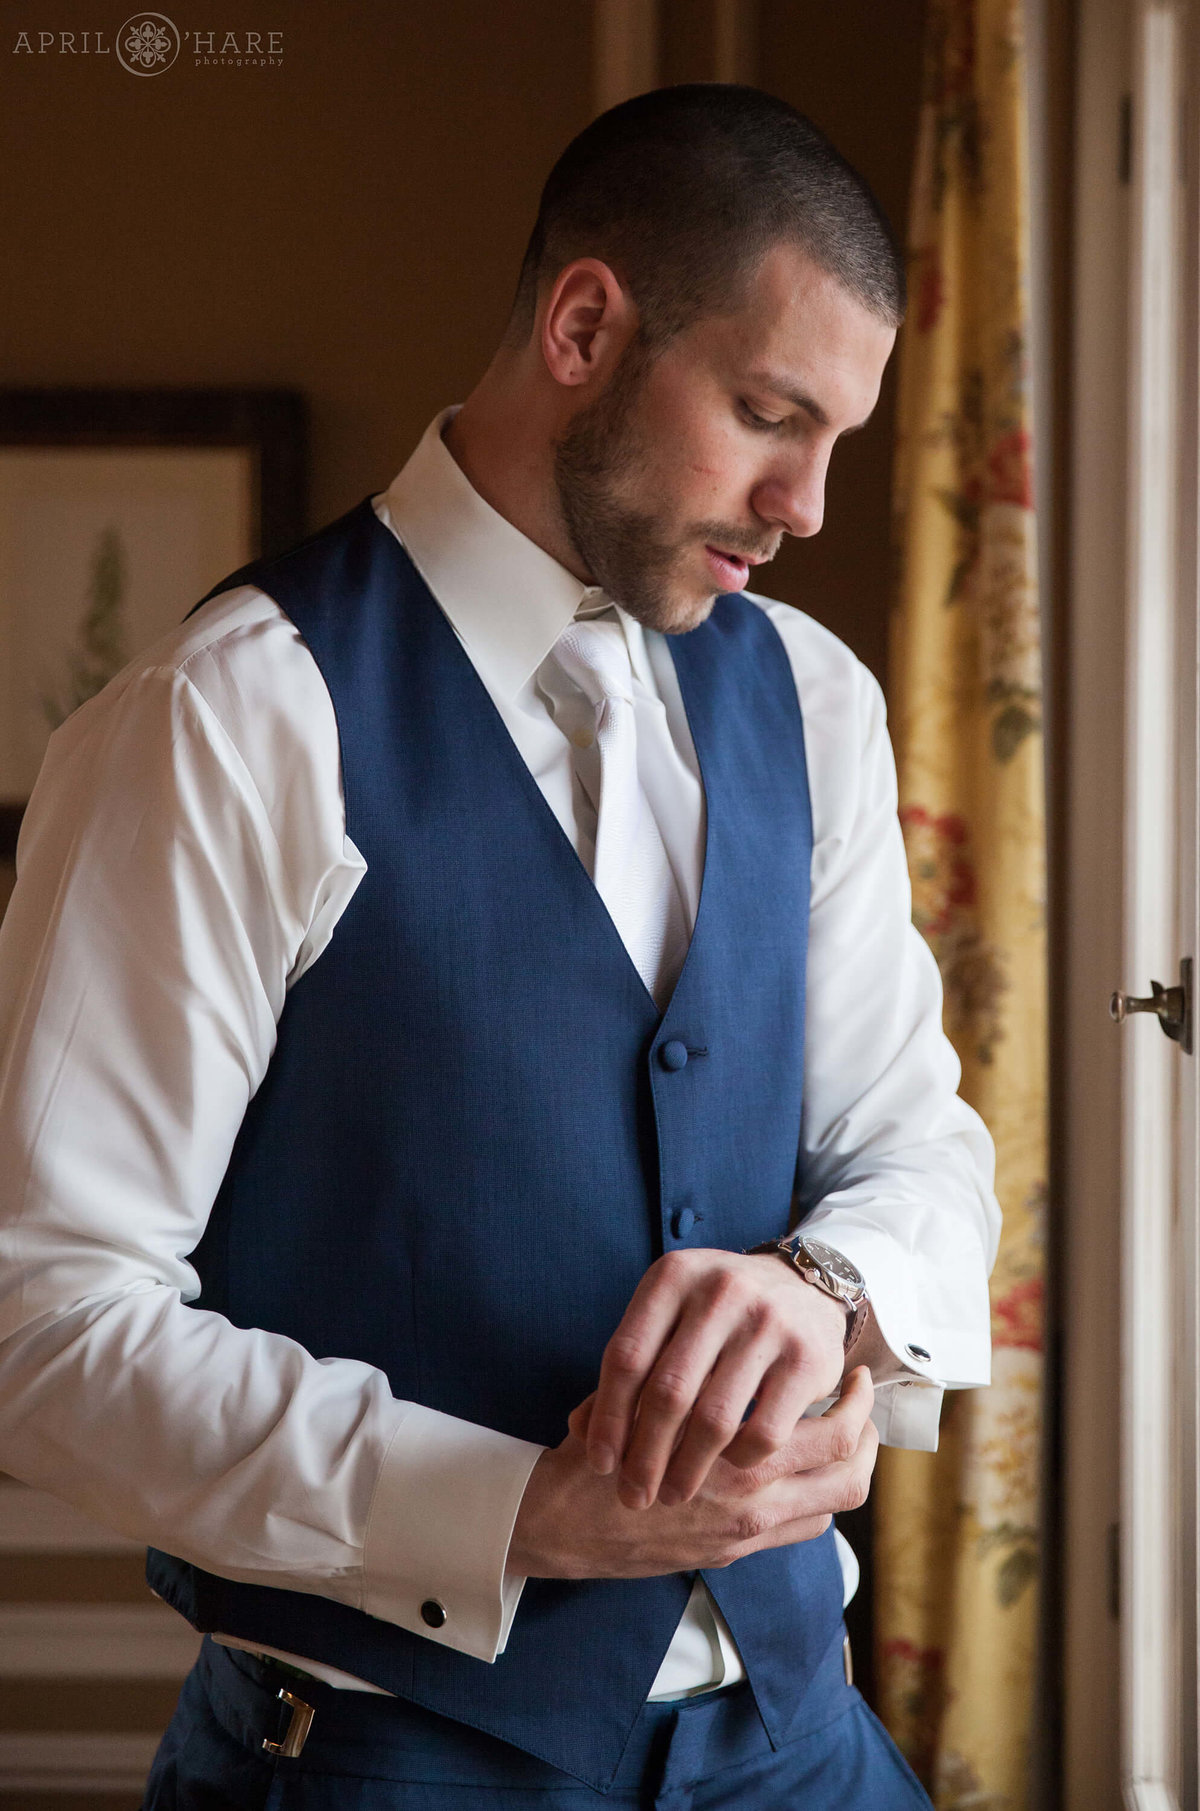 Groom dresses for wedding day at Highlands Ranch Mansion in Colorado